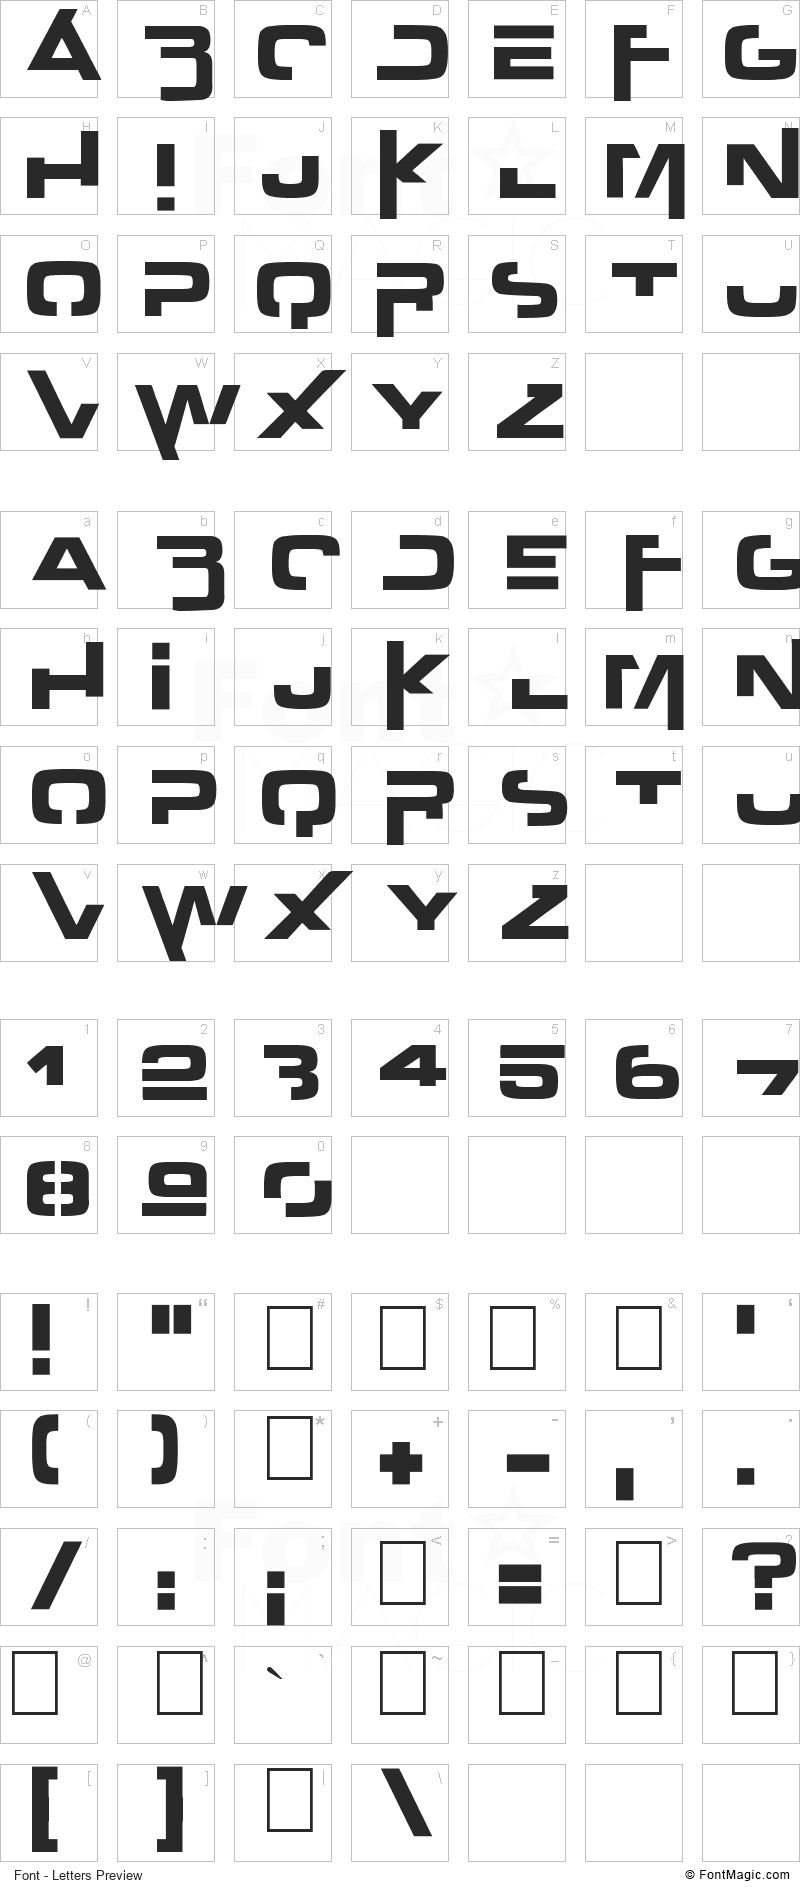 Outer Zone Font - All Latters Preview Chart